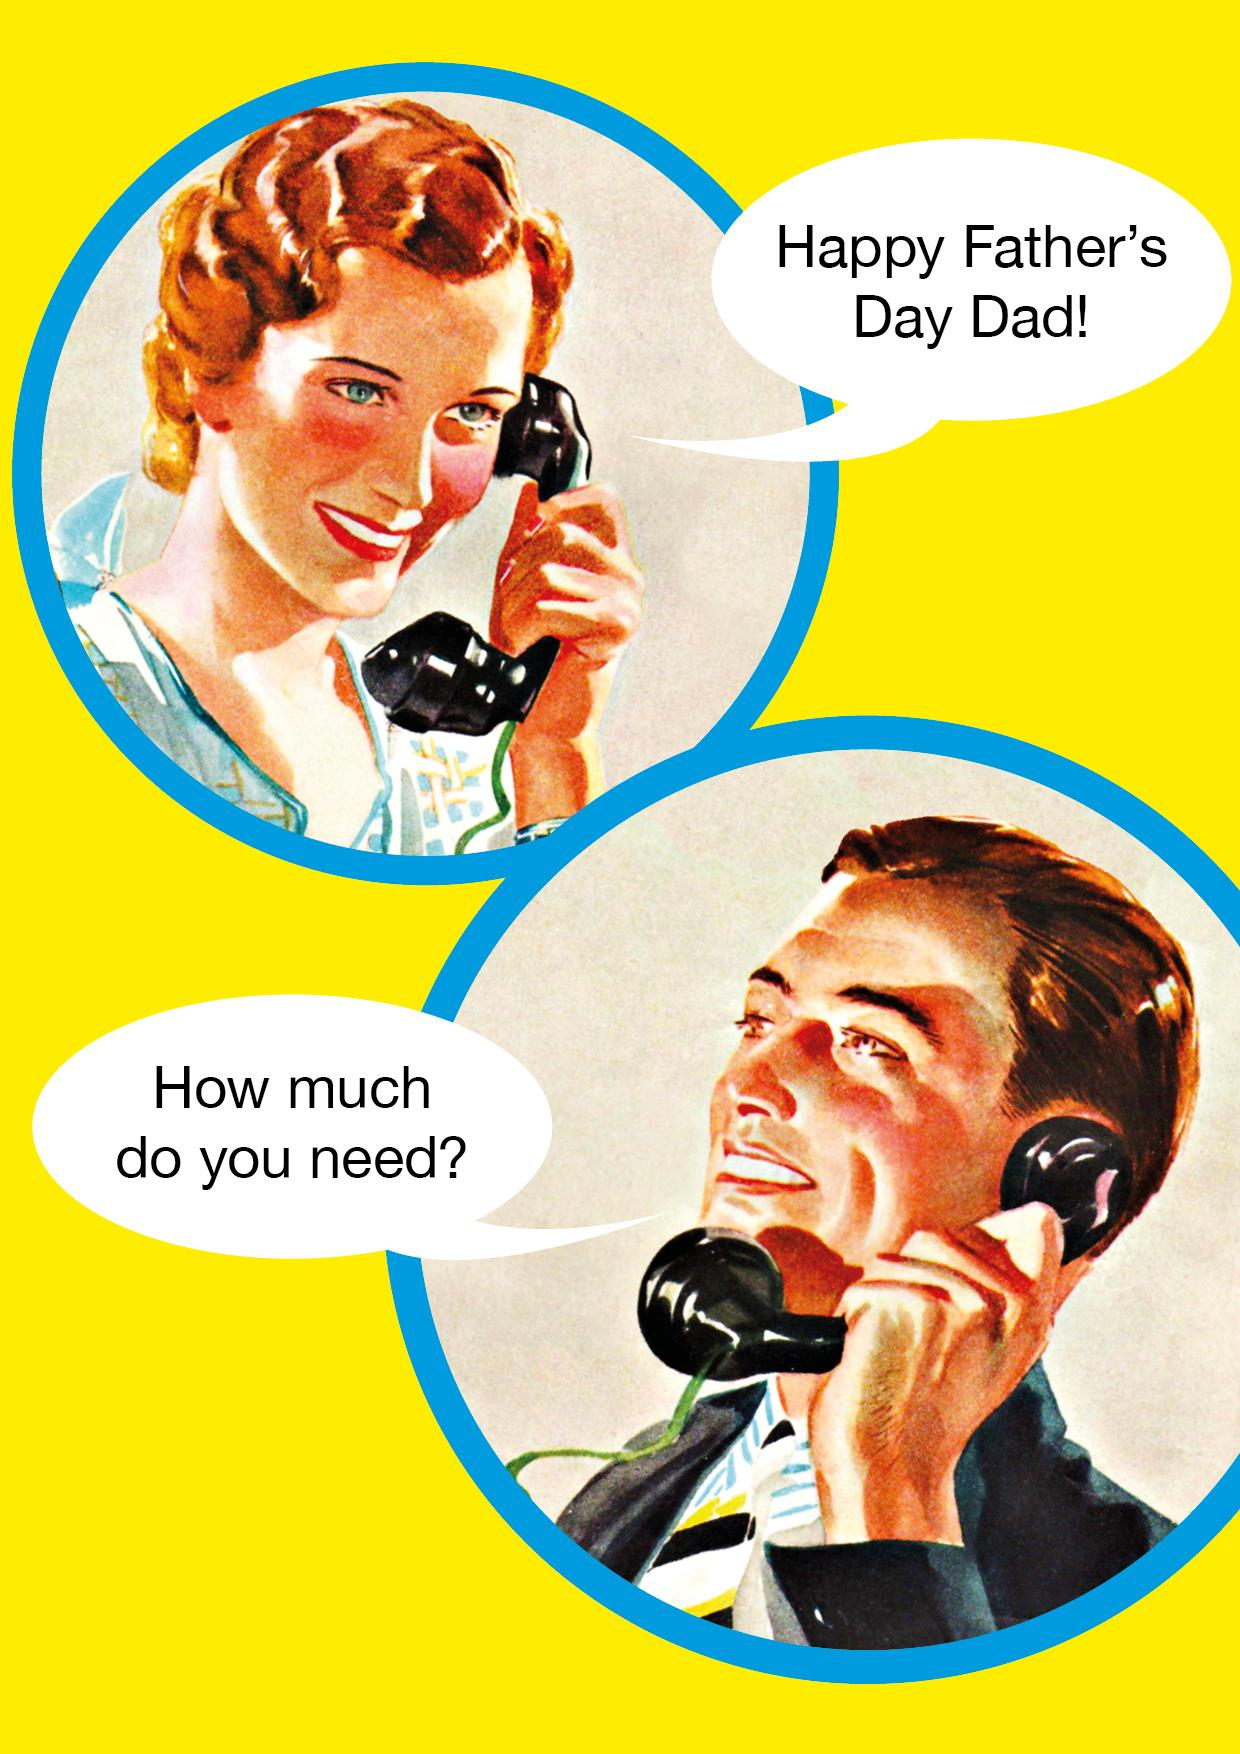 Fathers Day Card - Happy Fathers Day - How much do you need?